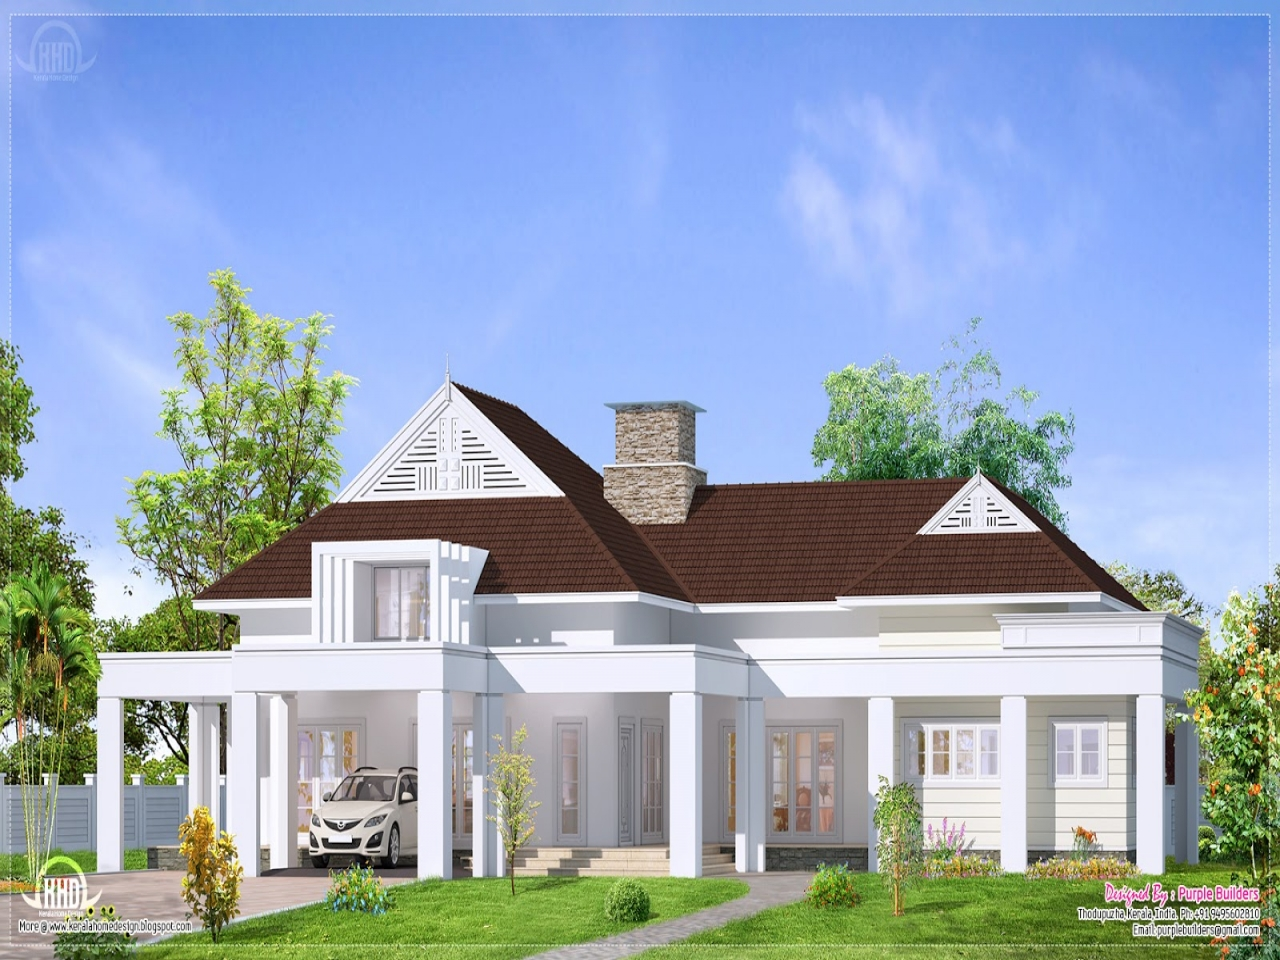 Single story craftsman style homes single story bungalow for Single story craftsman homes